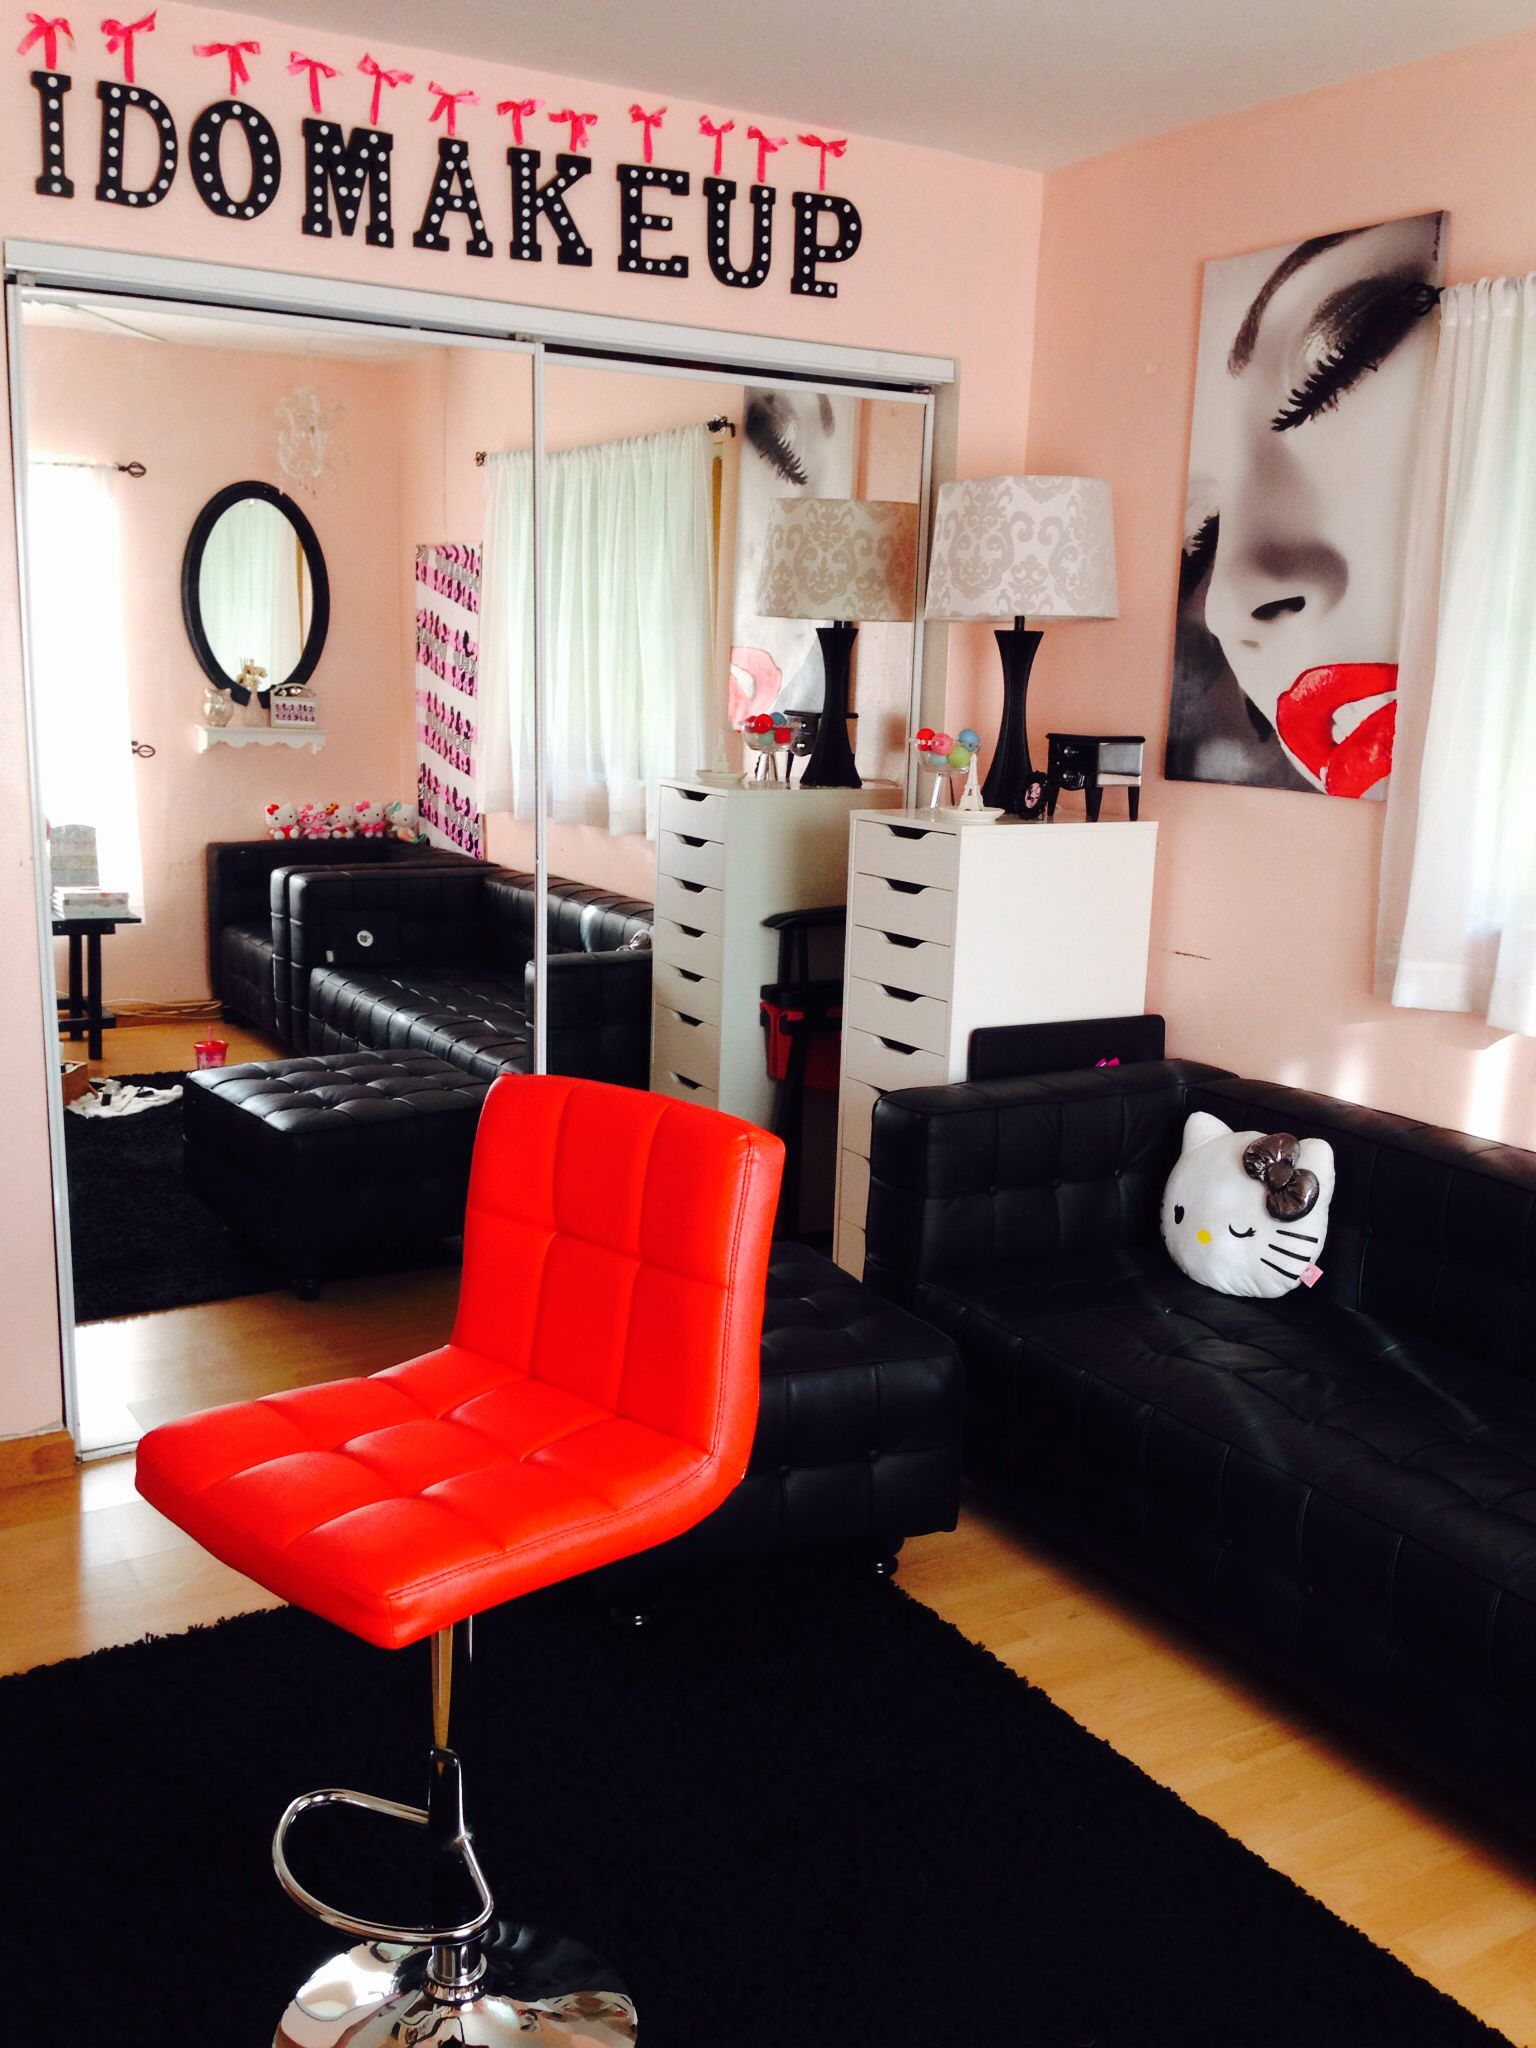 Make Up Studio Chairs Makeup Studio I 39m Going To Make It My Goal To Make